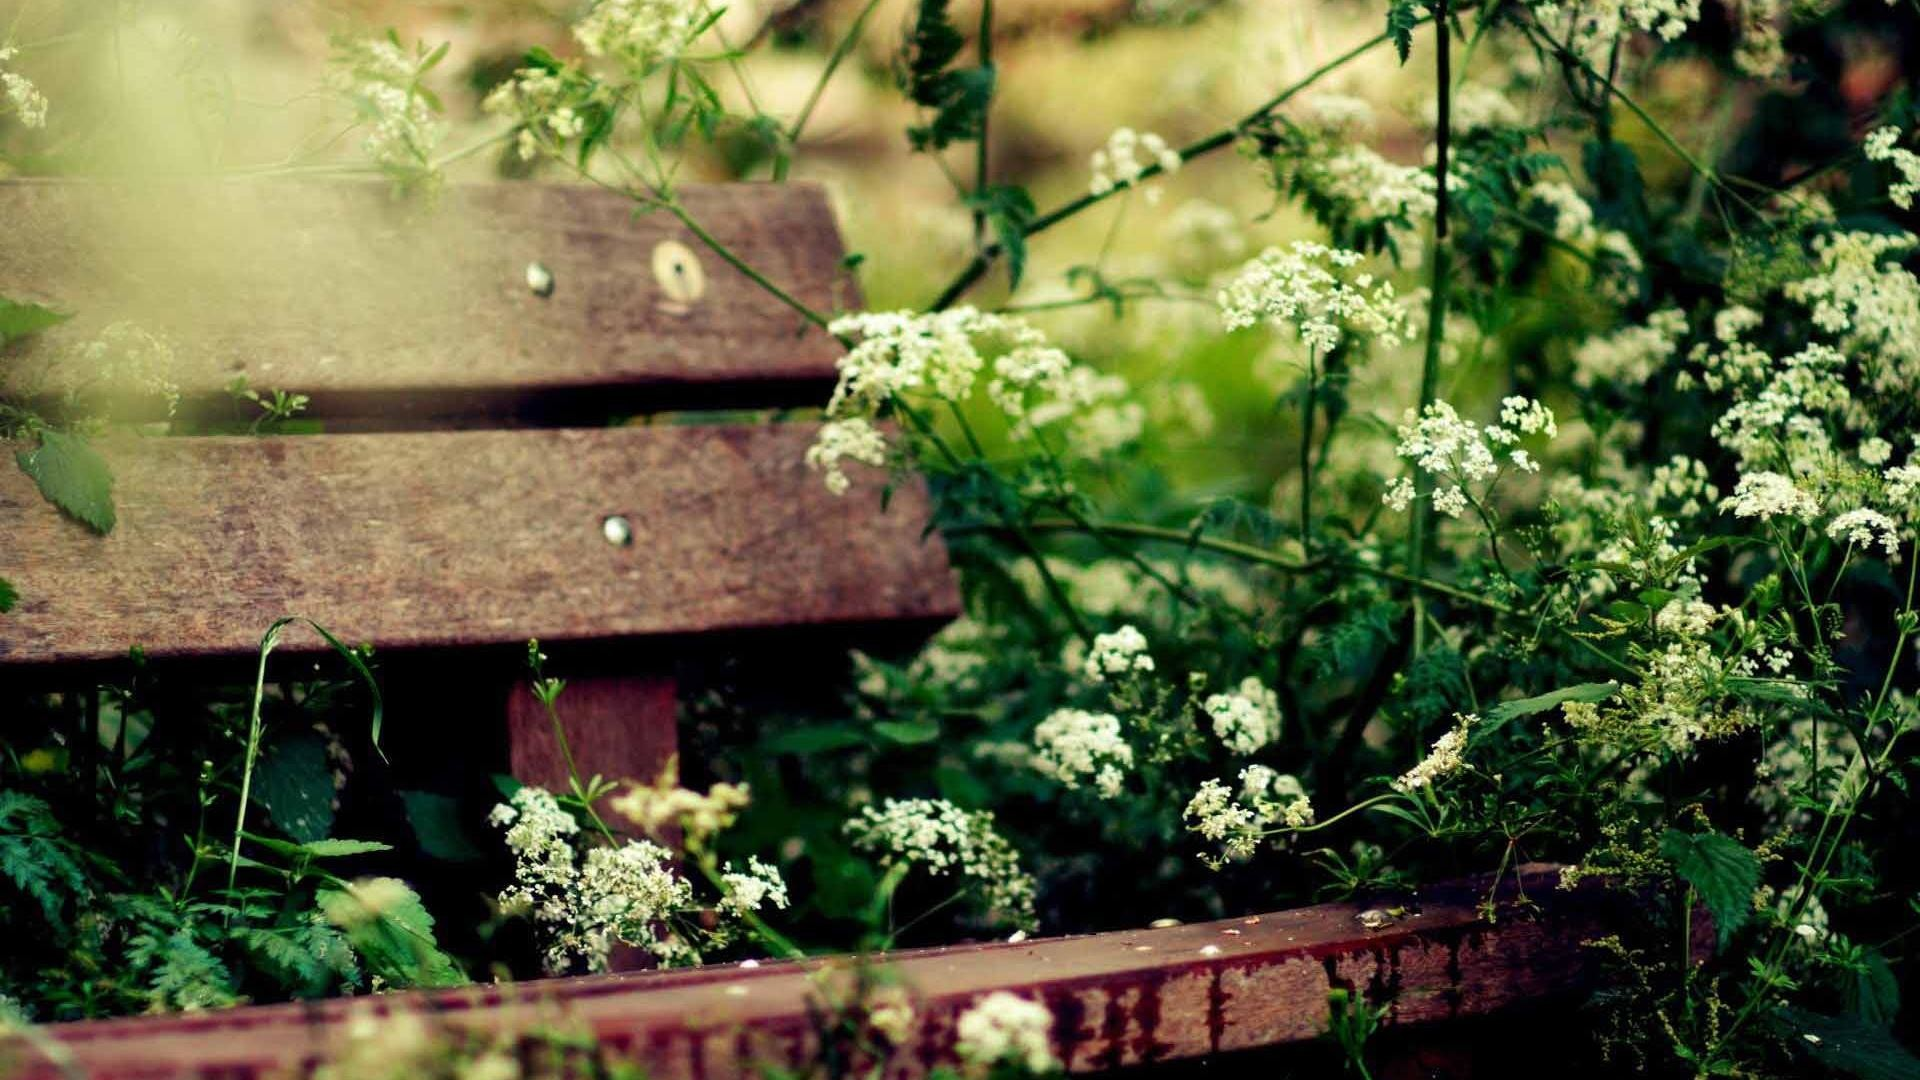 Res: 1920x1080,  The country and cute flowers wallpaper wide wallpapers:1280x800,1440x900,1680x1050  -